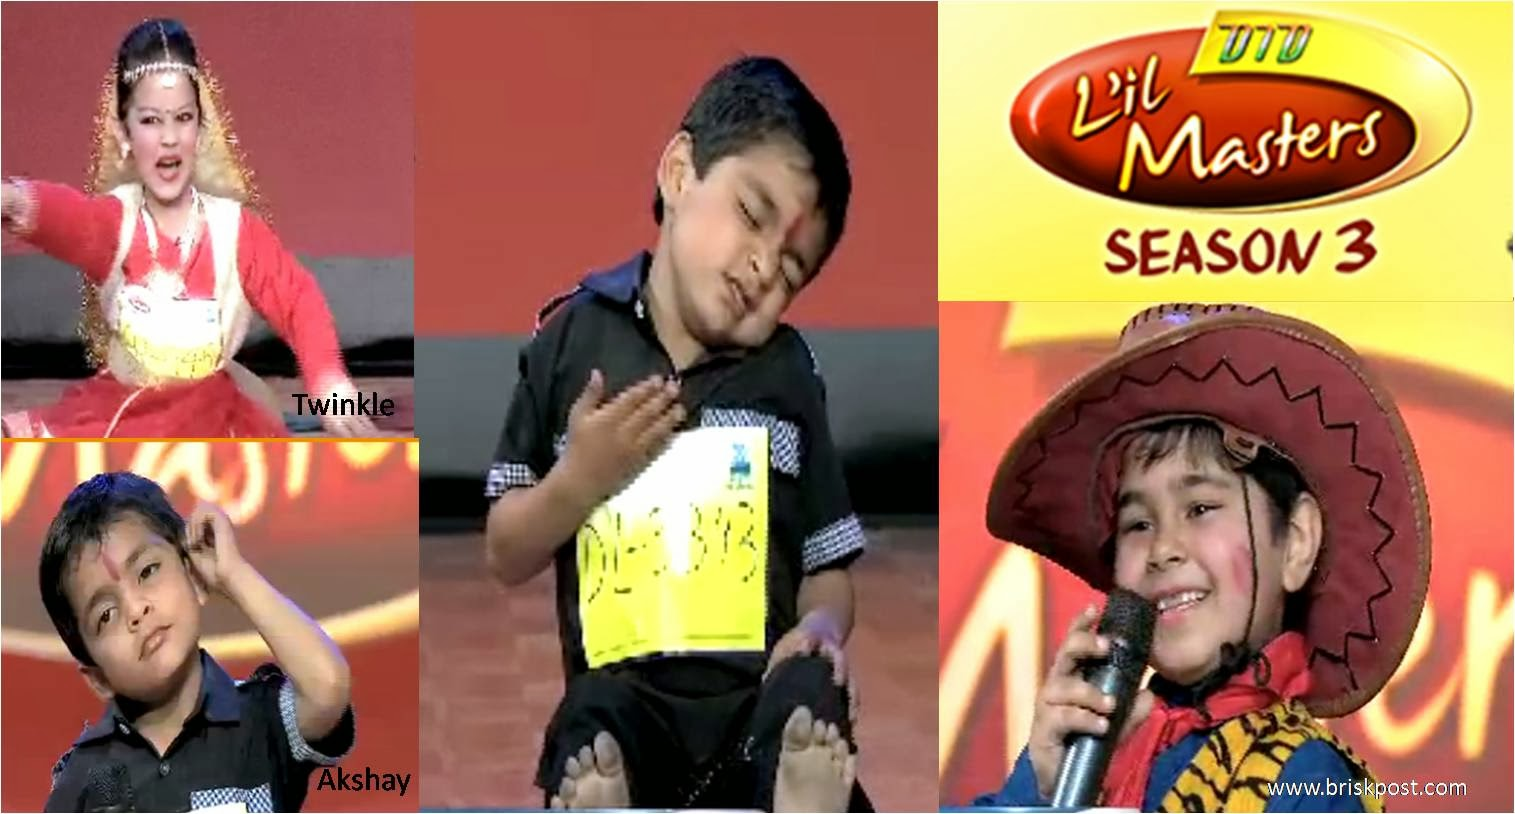 Bachchagiri in DID Little Masters Season 3: Delhi Auditions Rocked